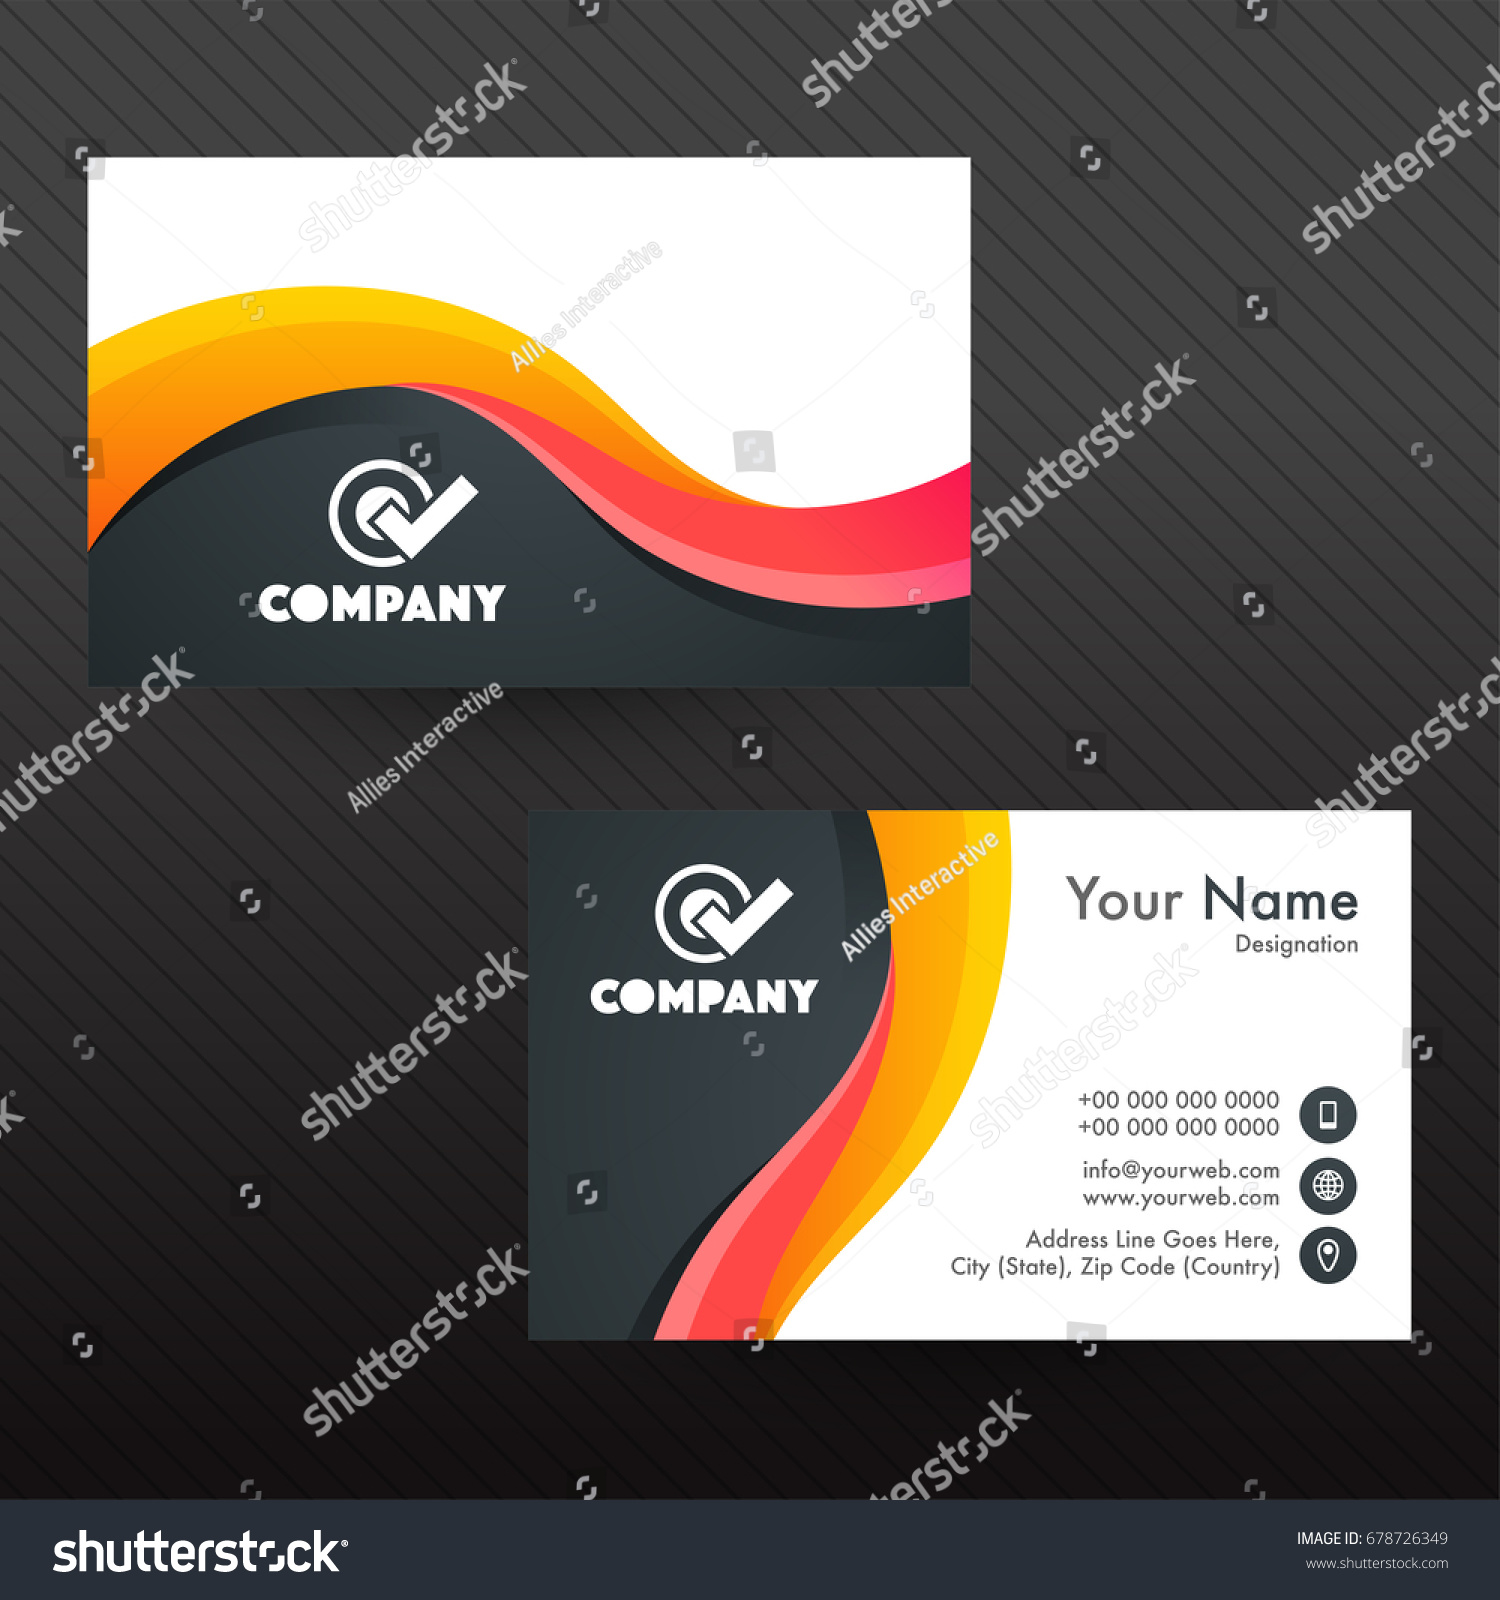 Pretty Professional Business Cards Design Ideas - Business Card ...